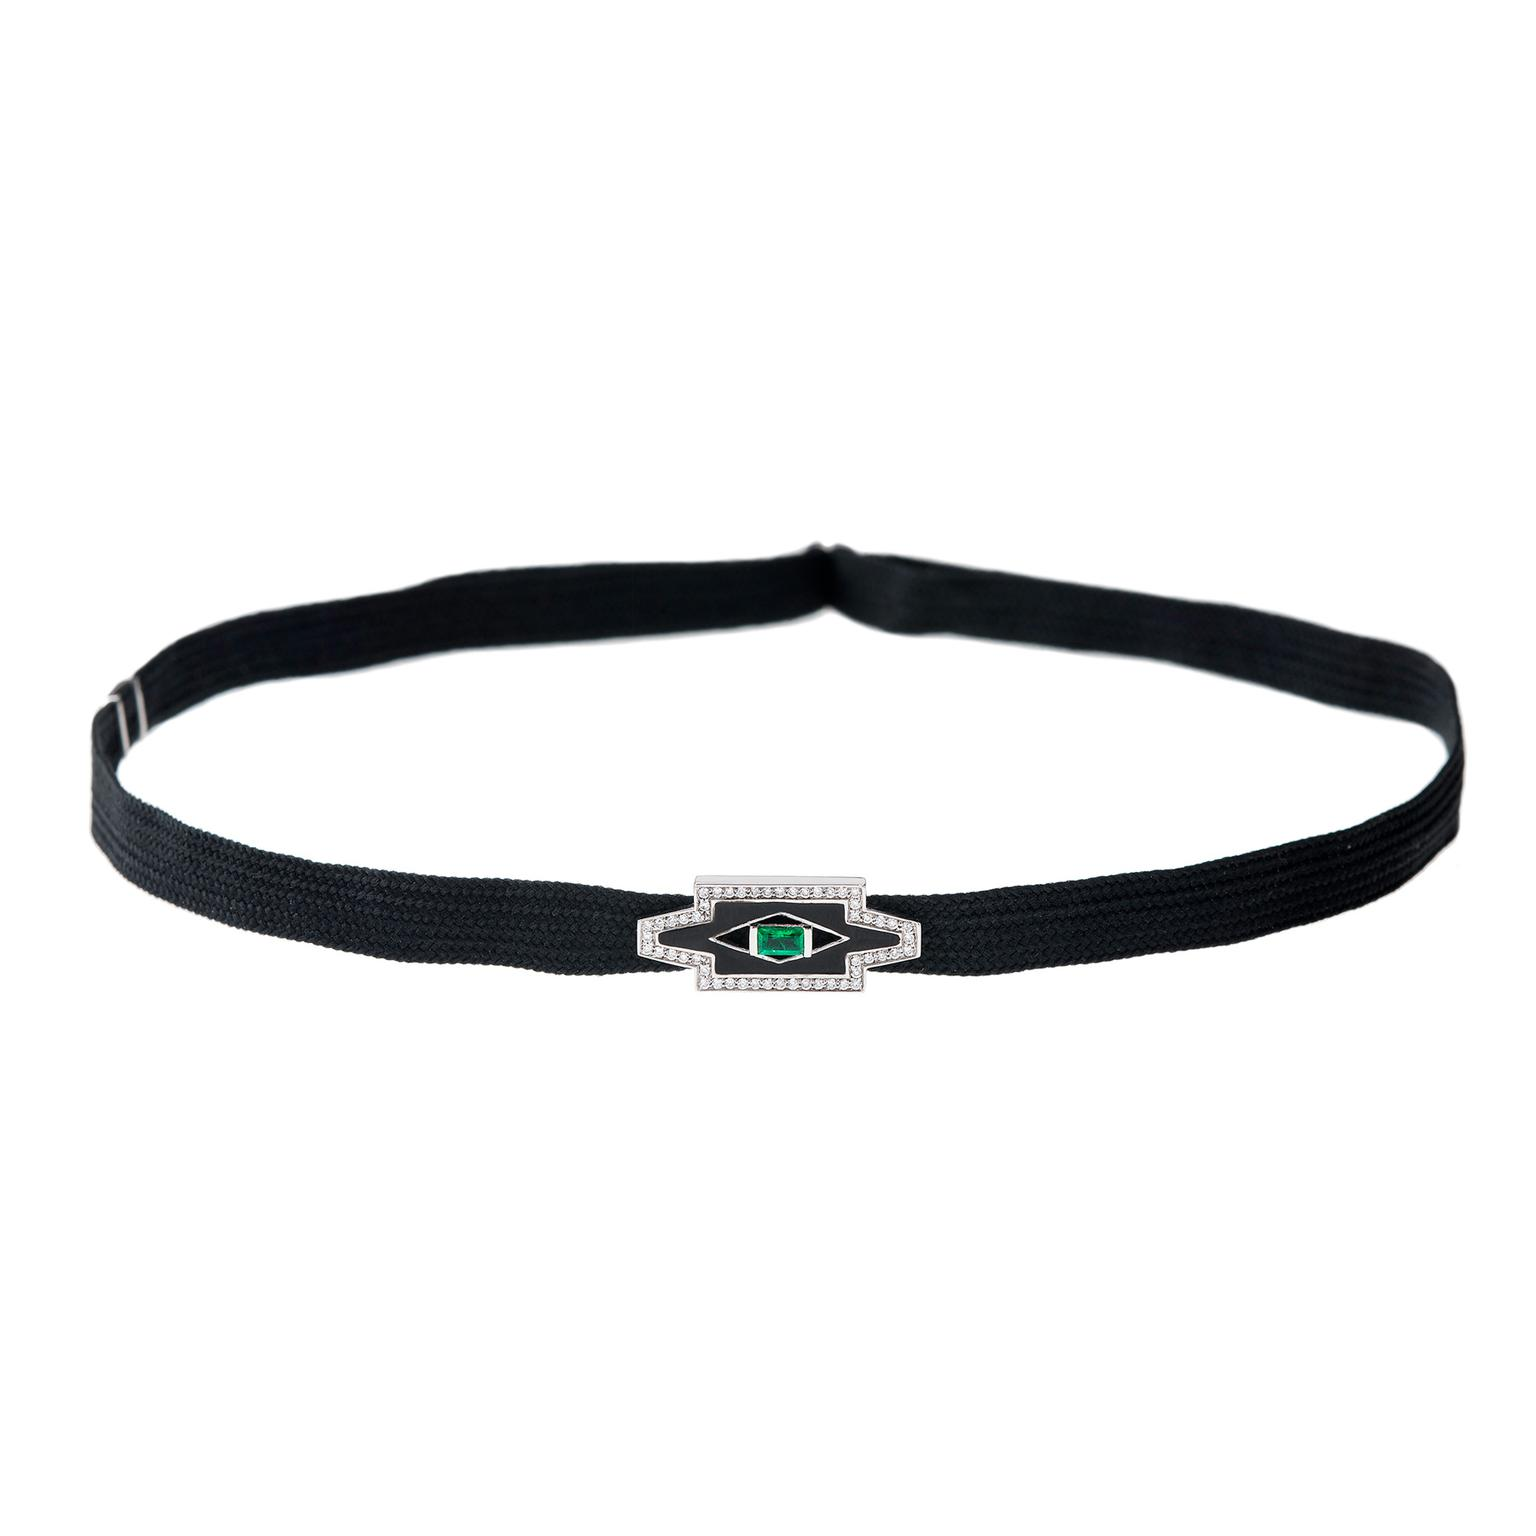 Nikos Koulis Yesterday black choker